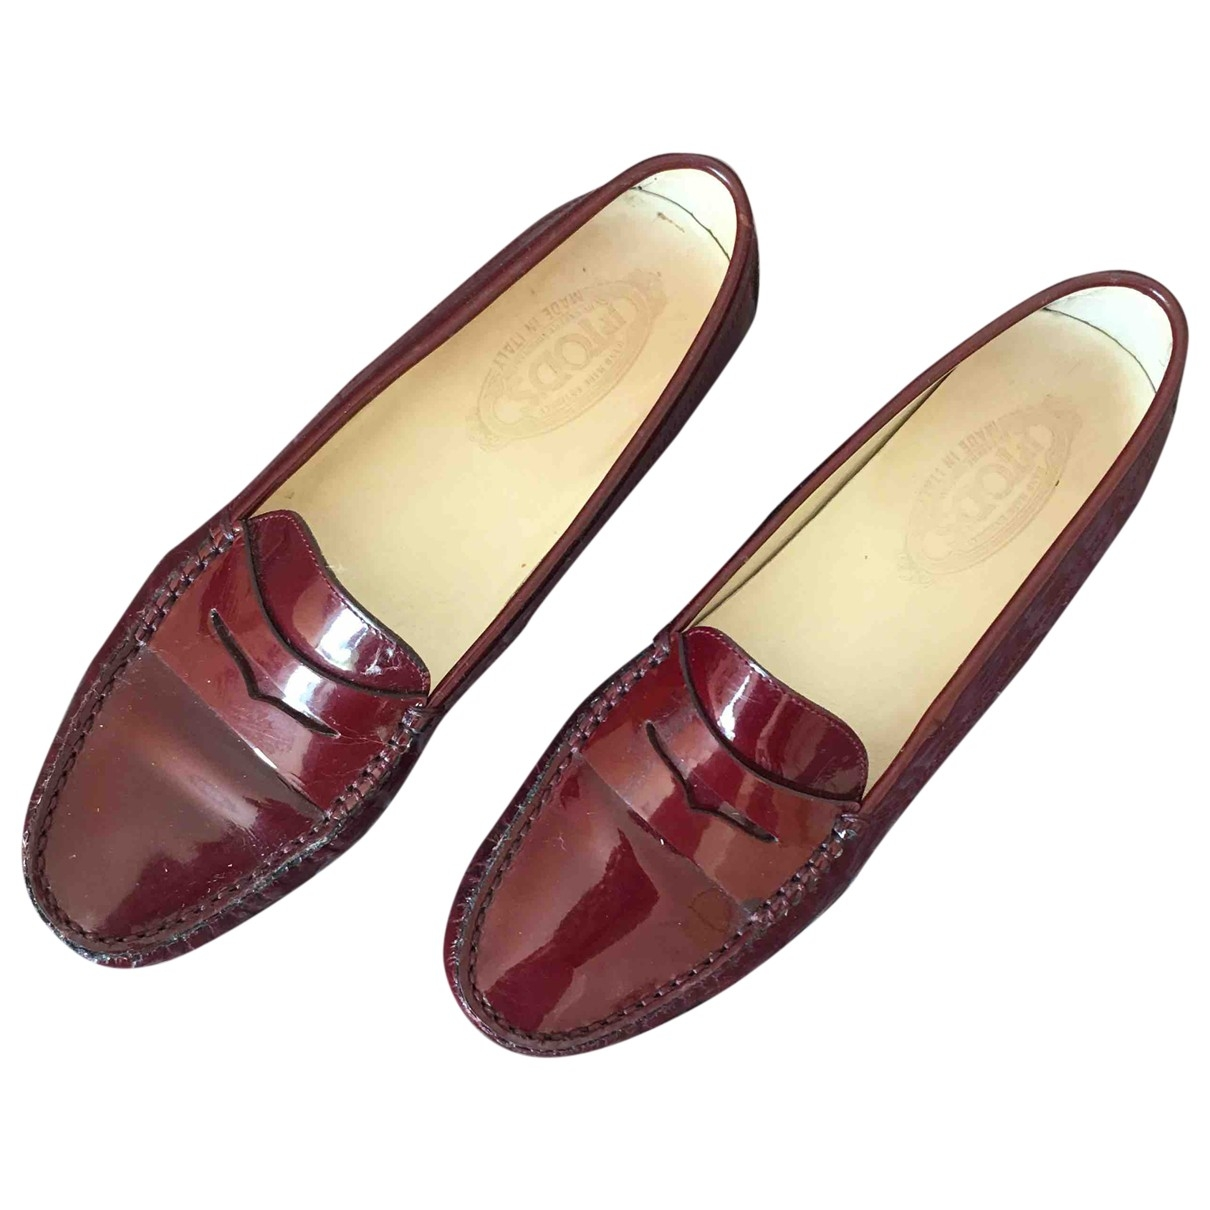 Tod's \N Burgundy Patent leather Flats for Women 41 EU